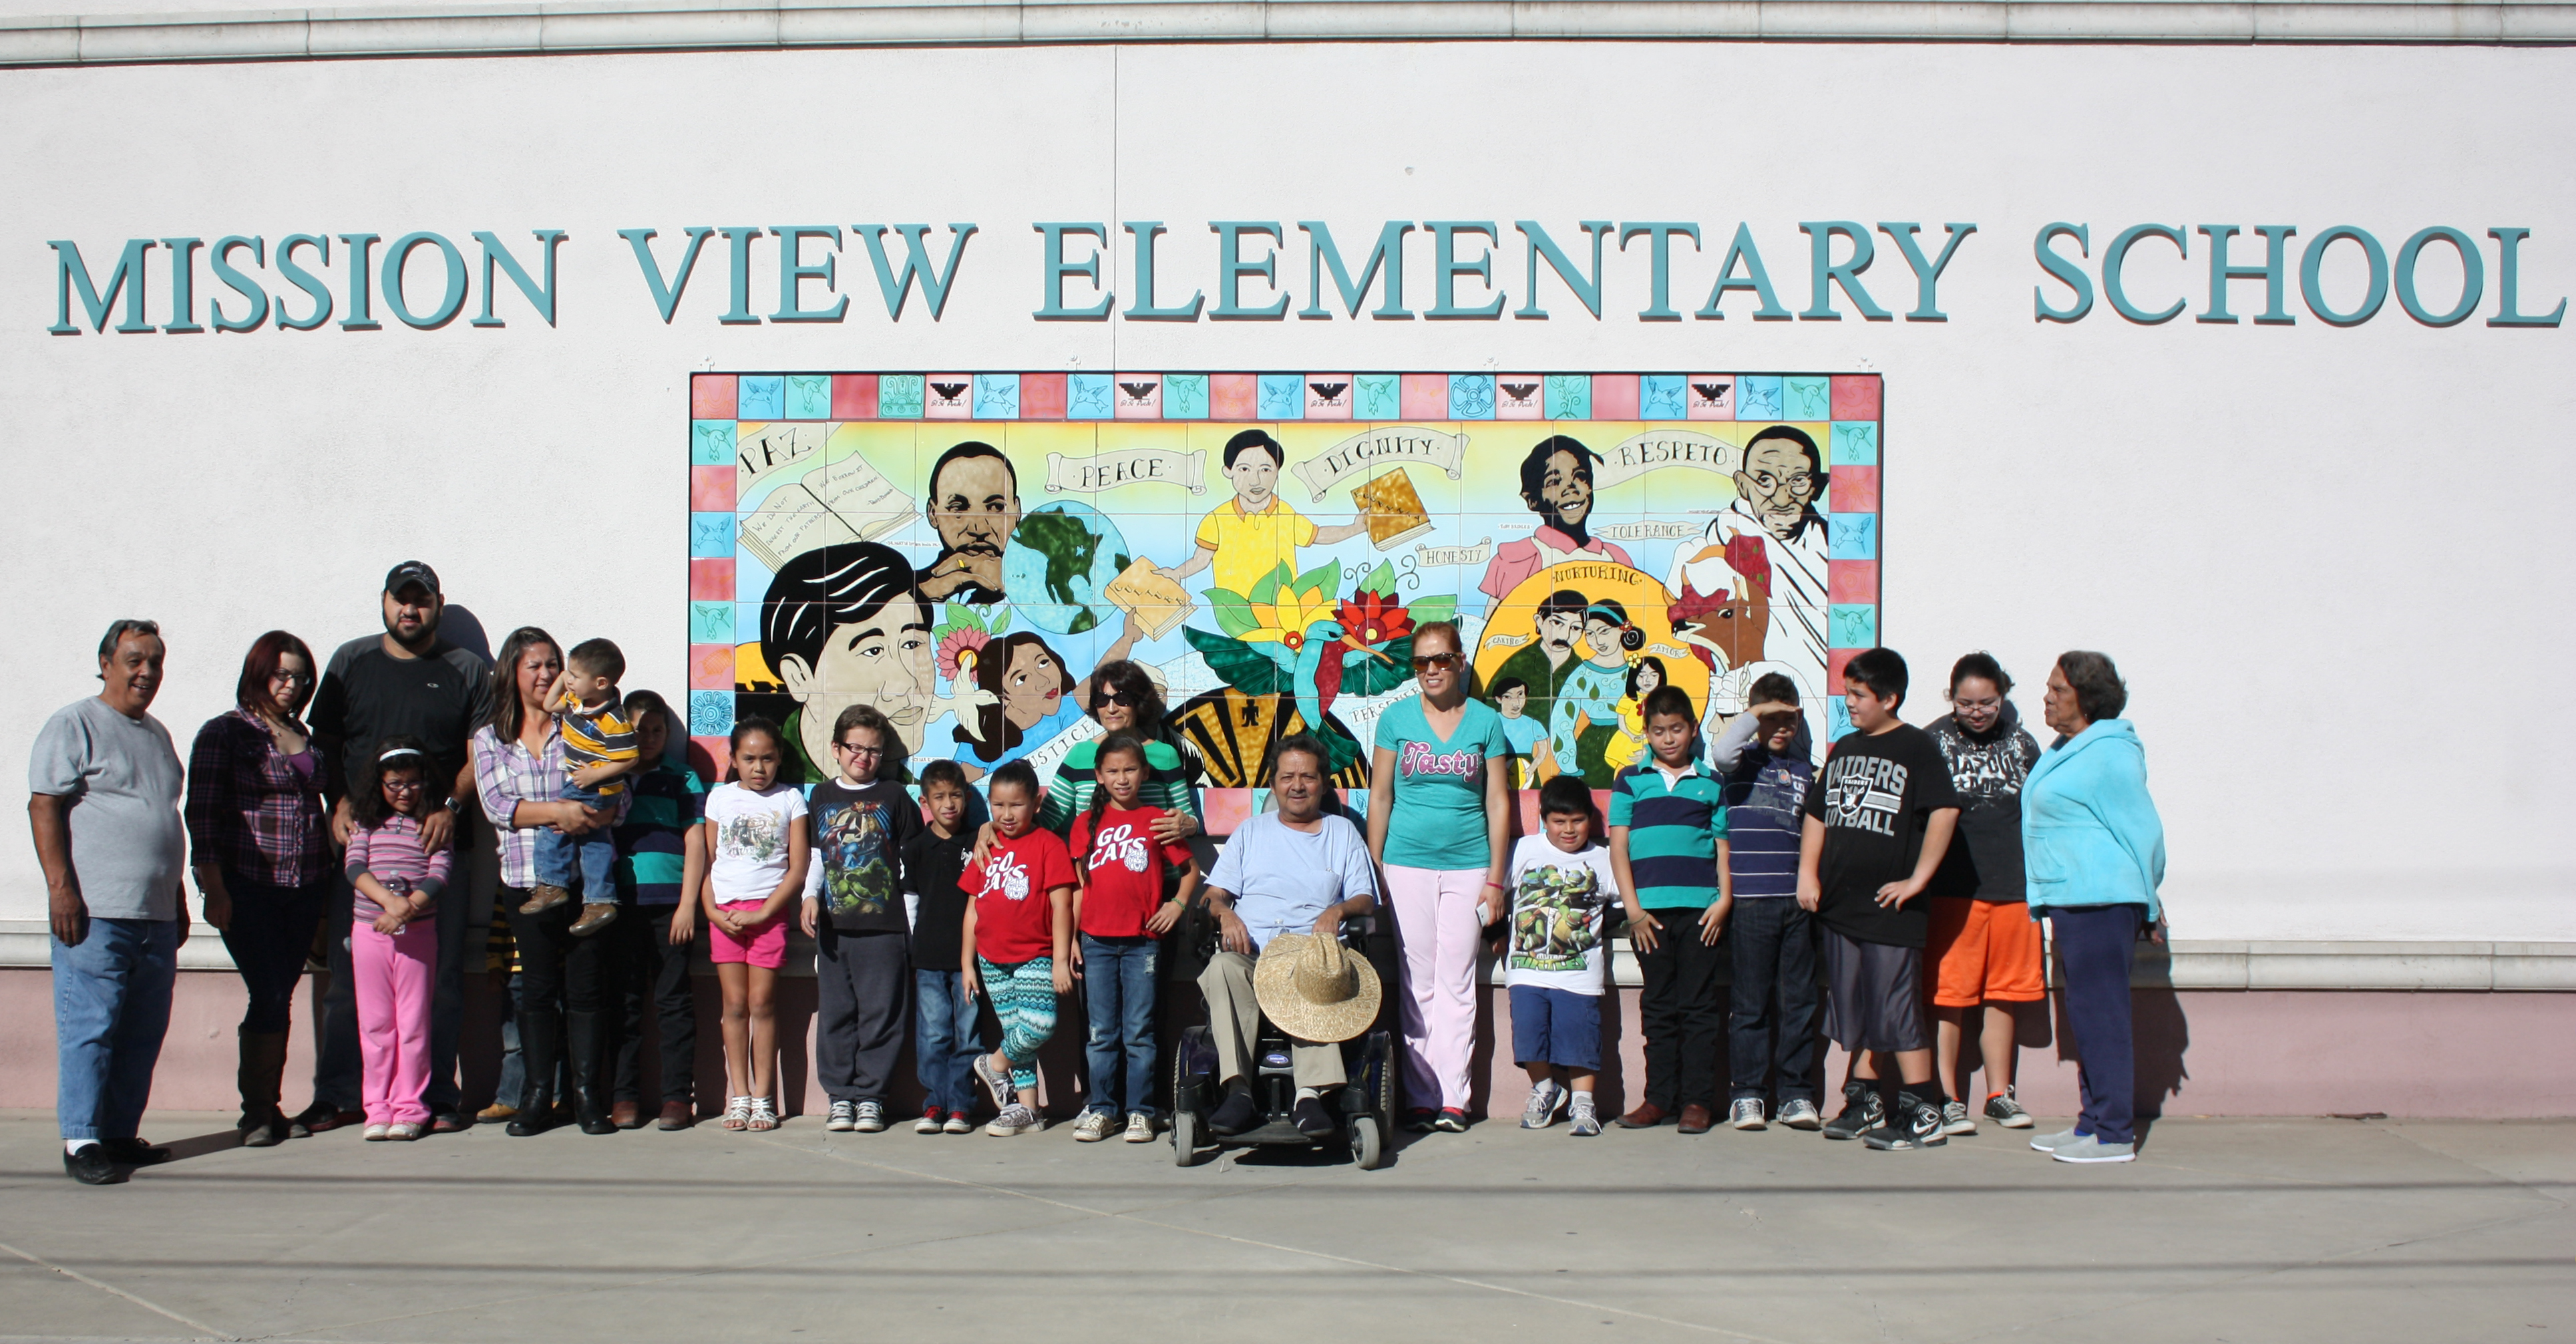 photo of concerned families in South Tucson standing in front of Mission View Elementary School with school name and mural behind them (22 people, 14 of them children)